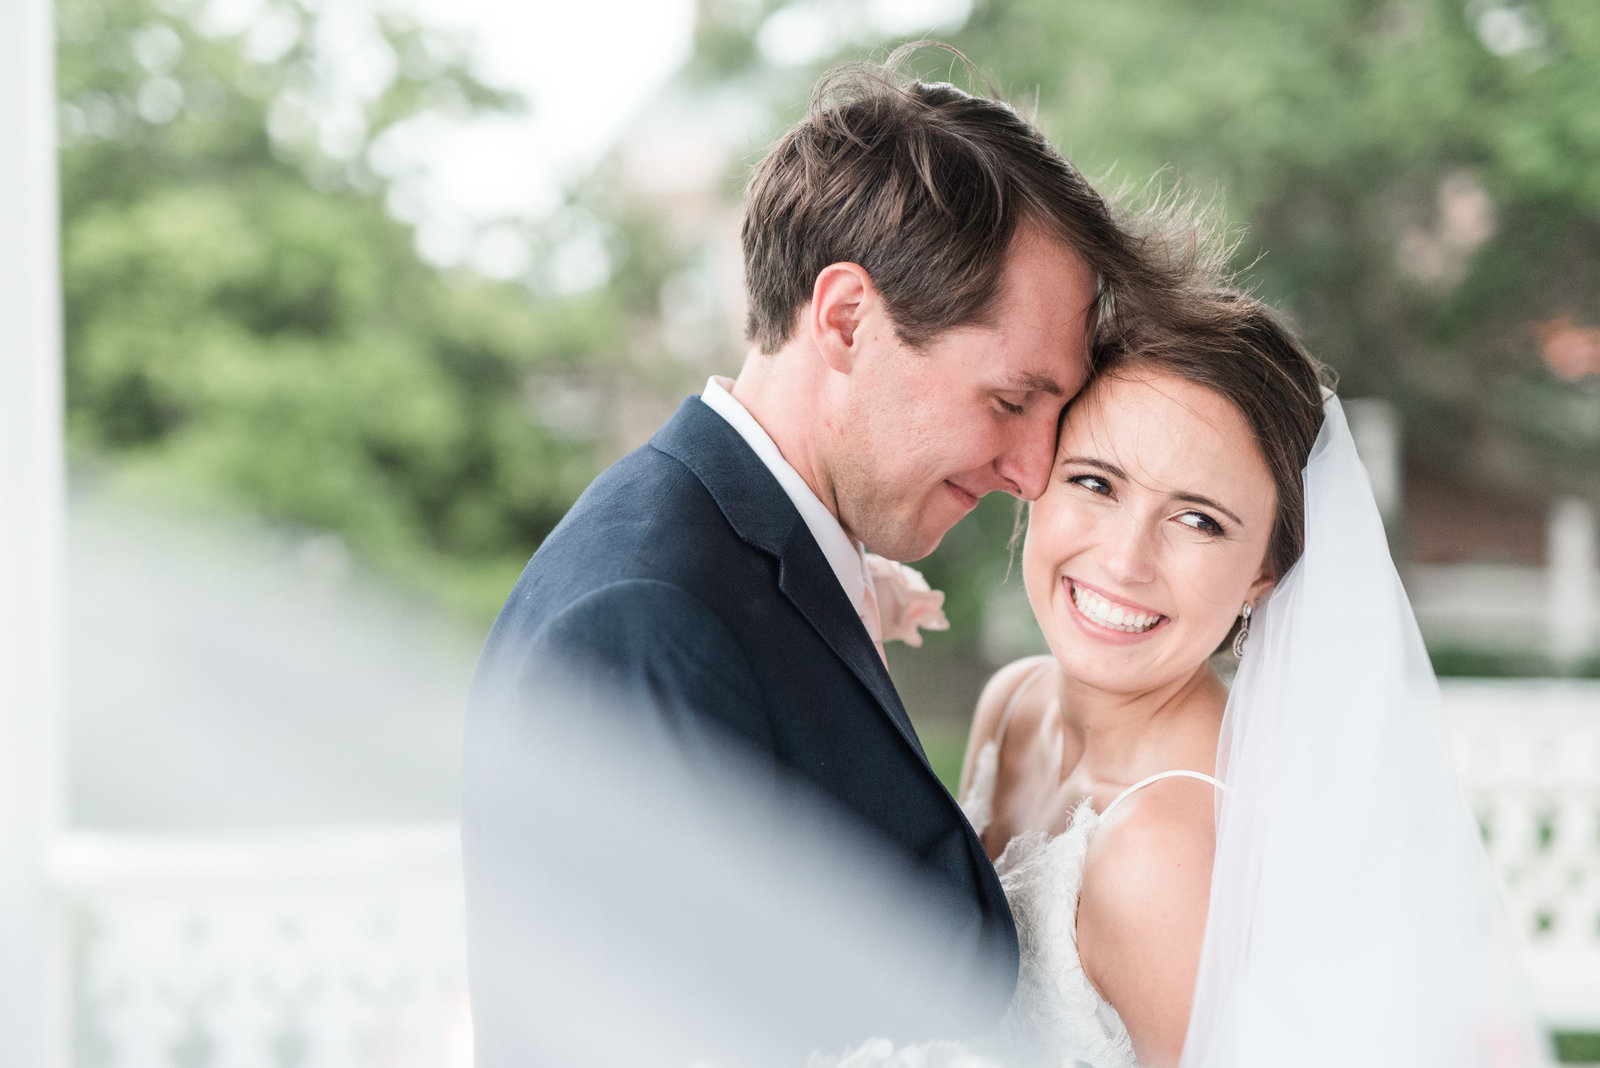 southern-wedding-portraits-hampton-roads-virginia-photo135